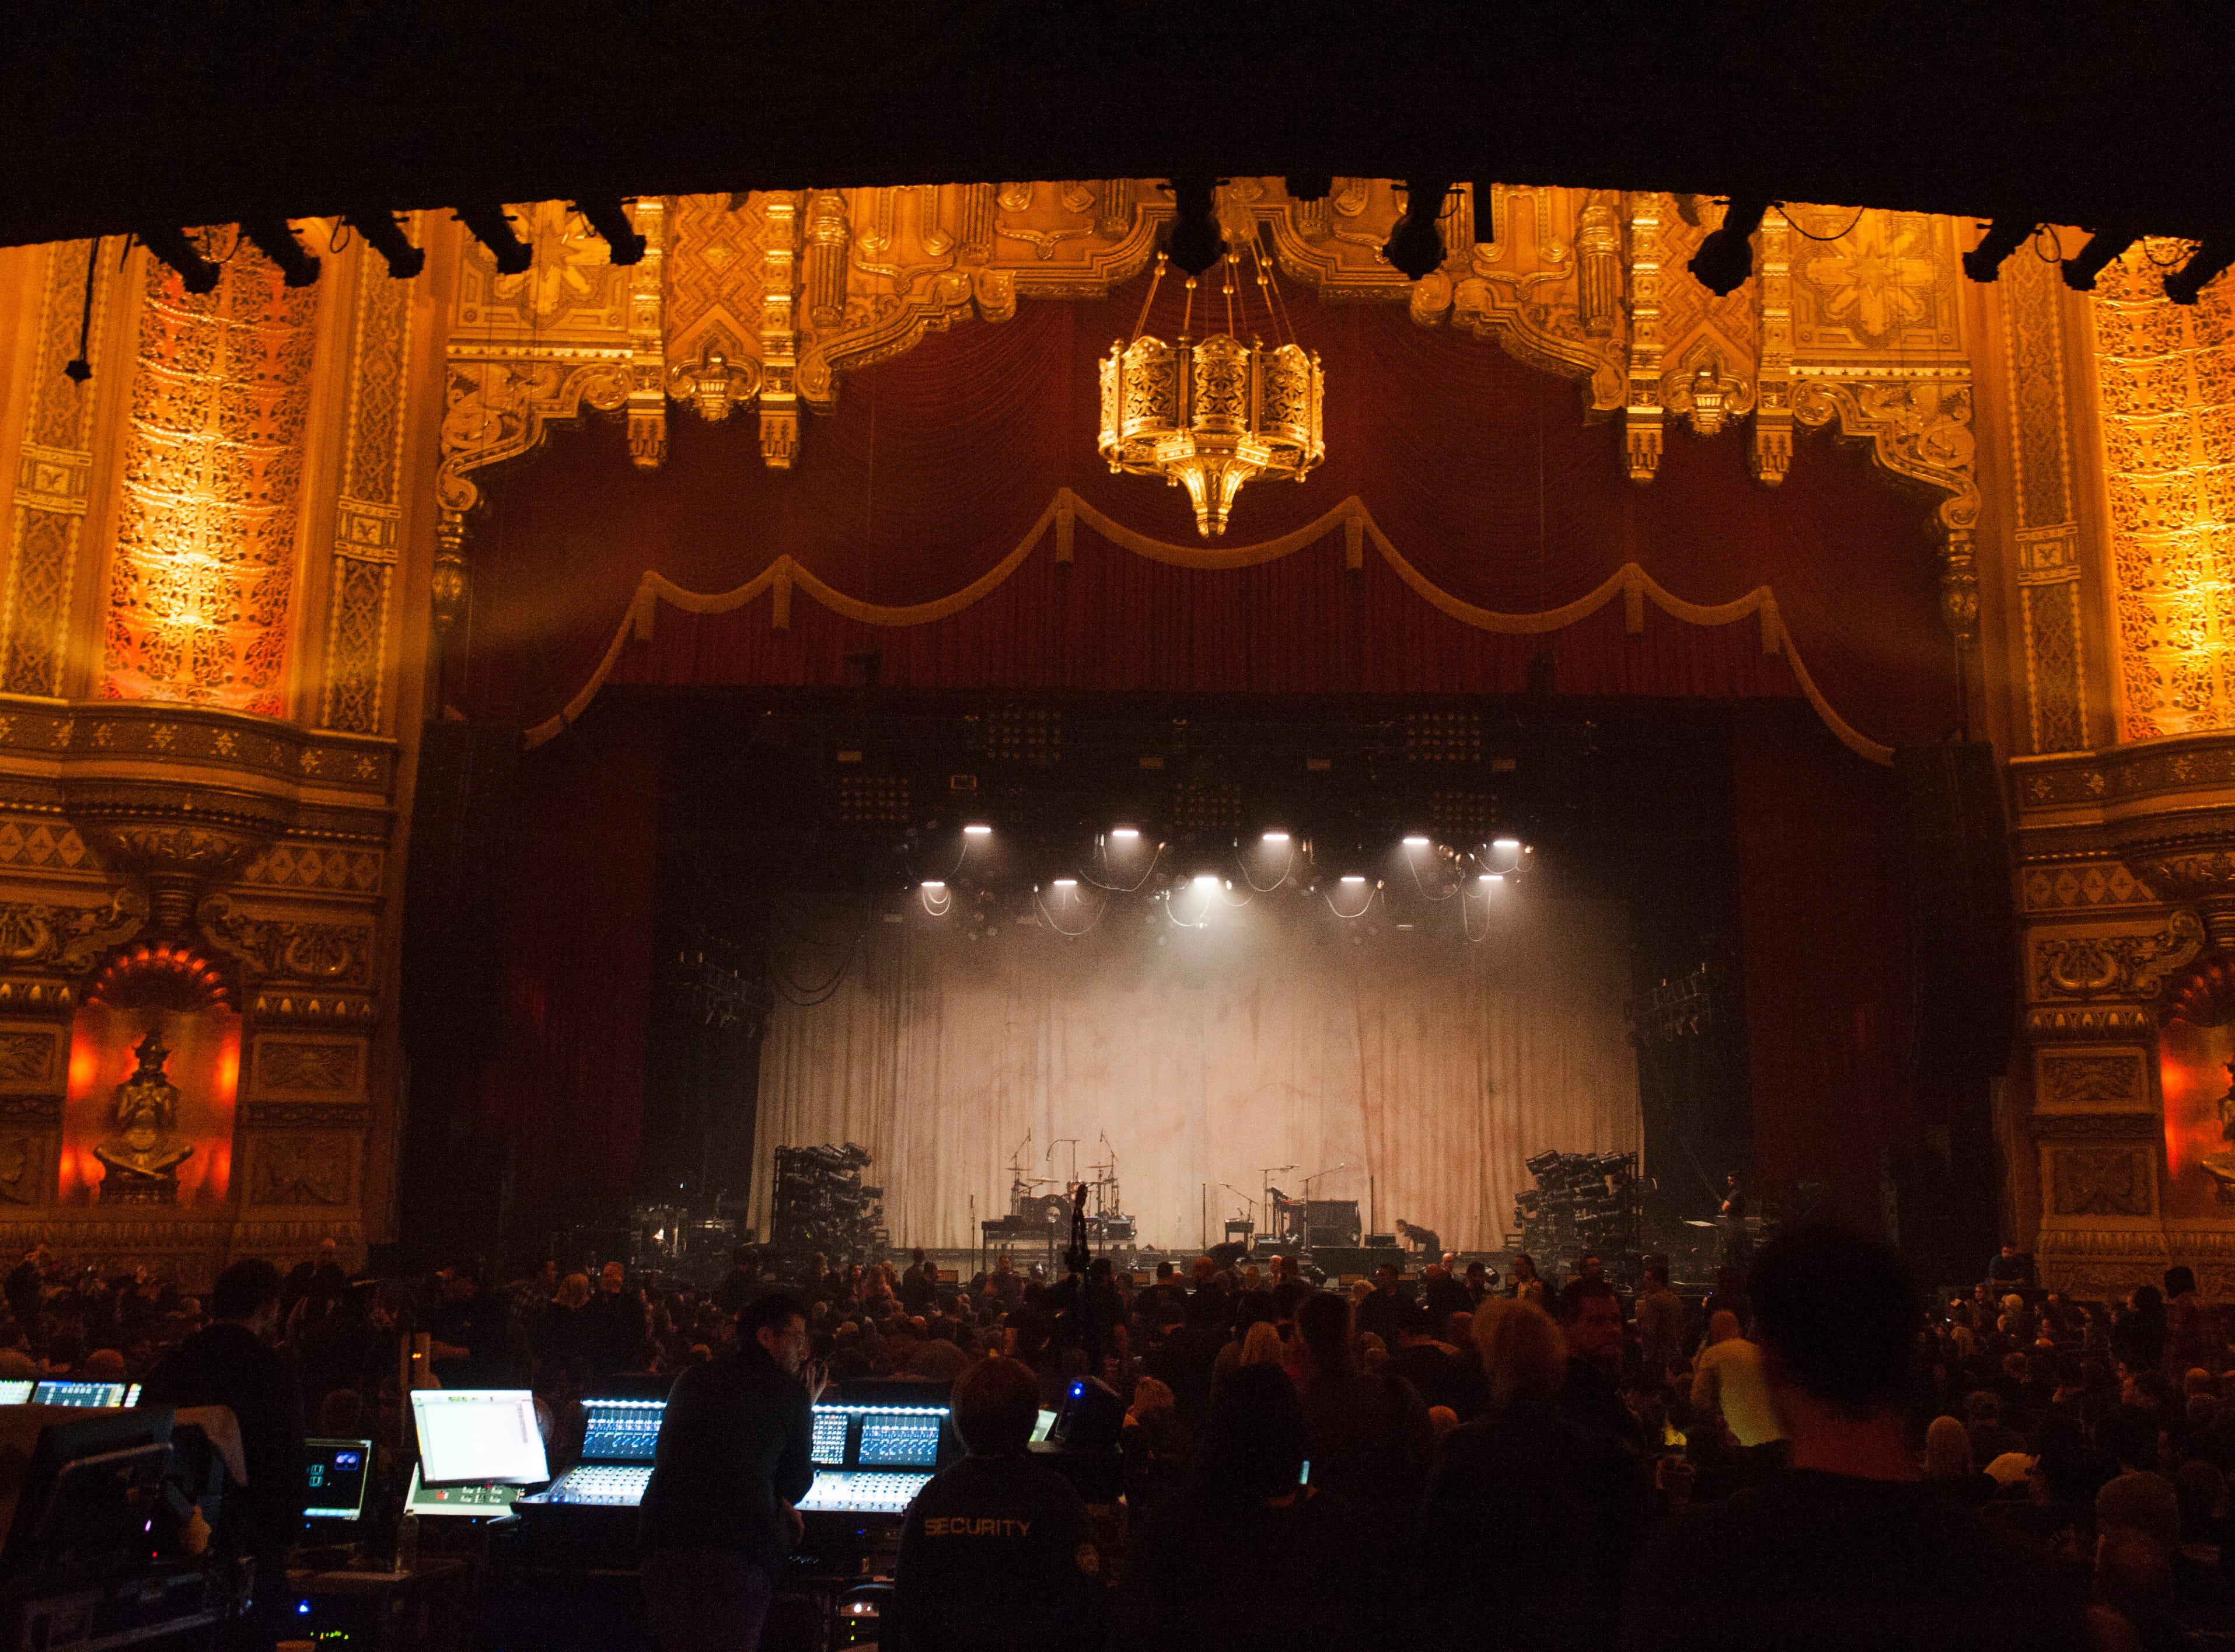 The stage inside the ornate Fox Theatre  awaits industrial hard rock band Nine Inch Nails.